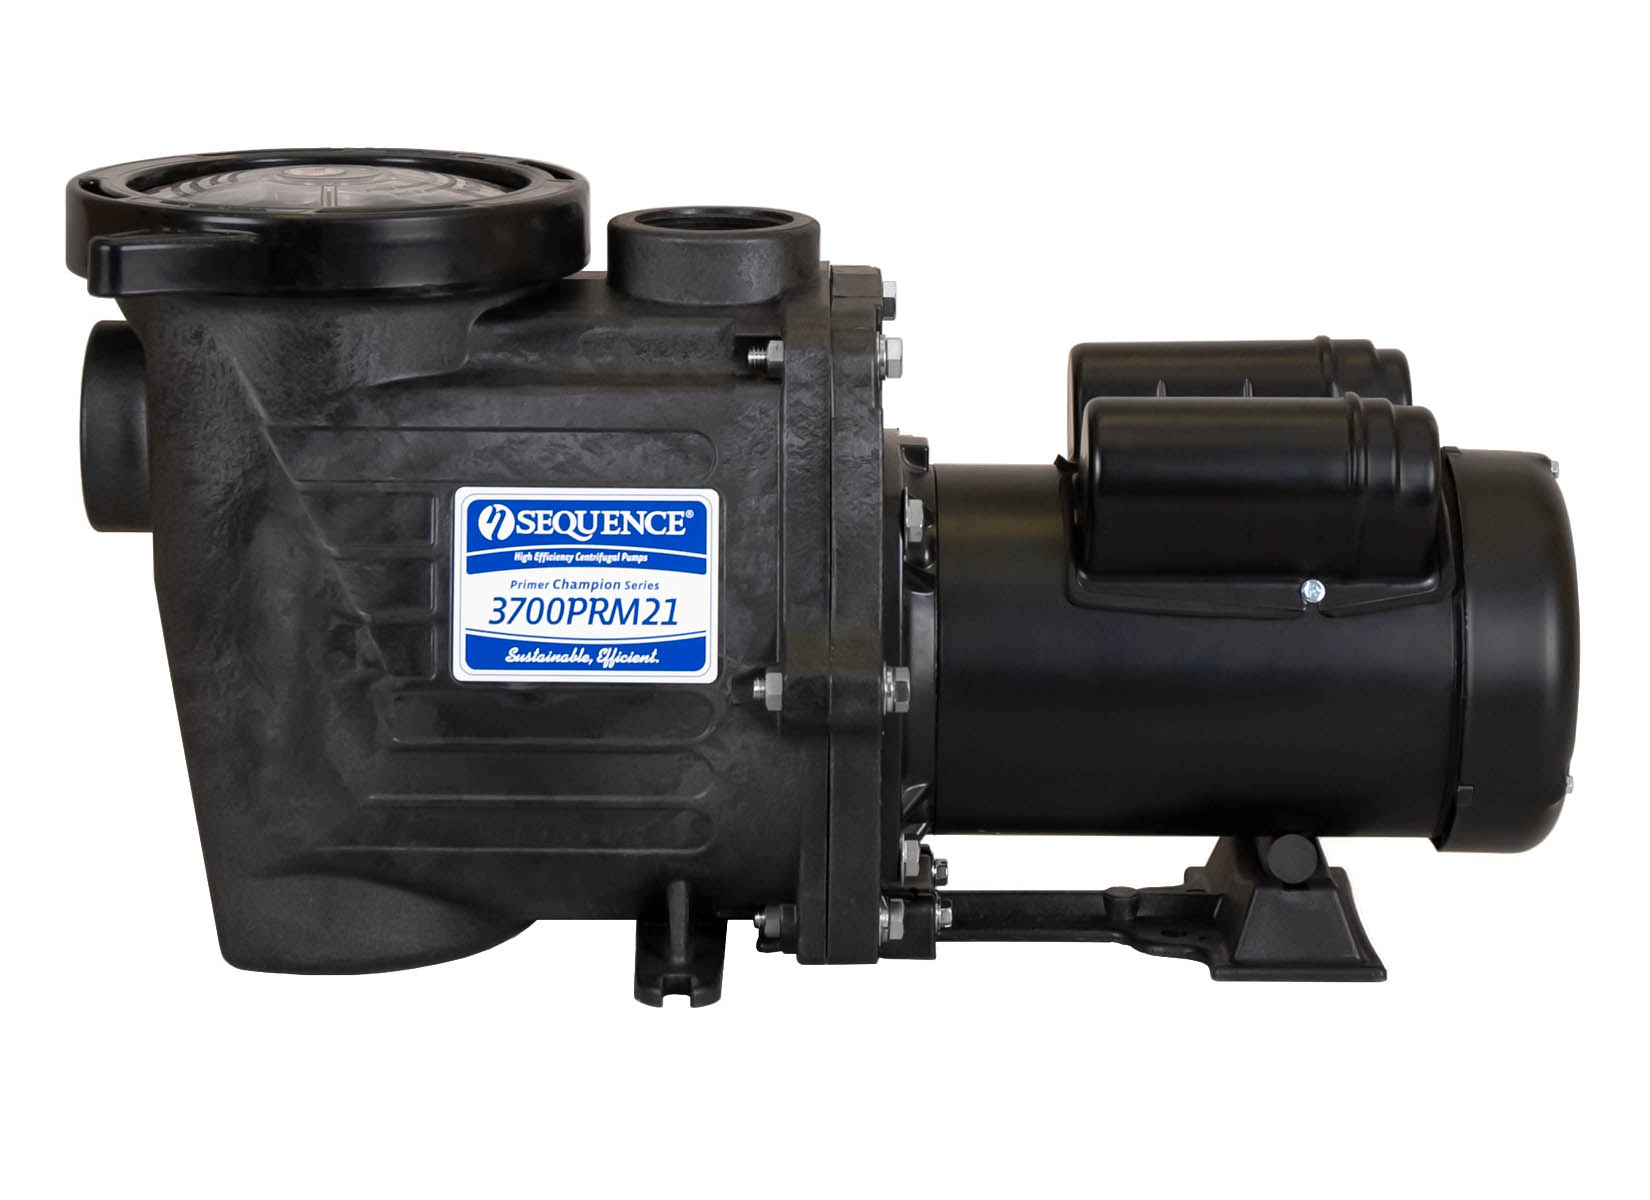 Sequence Primer Champion Pump with black Leeson Motor right side view